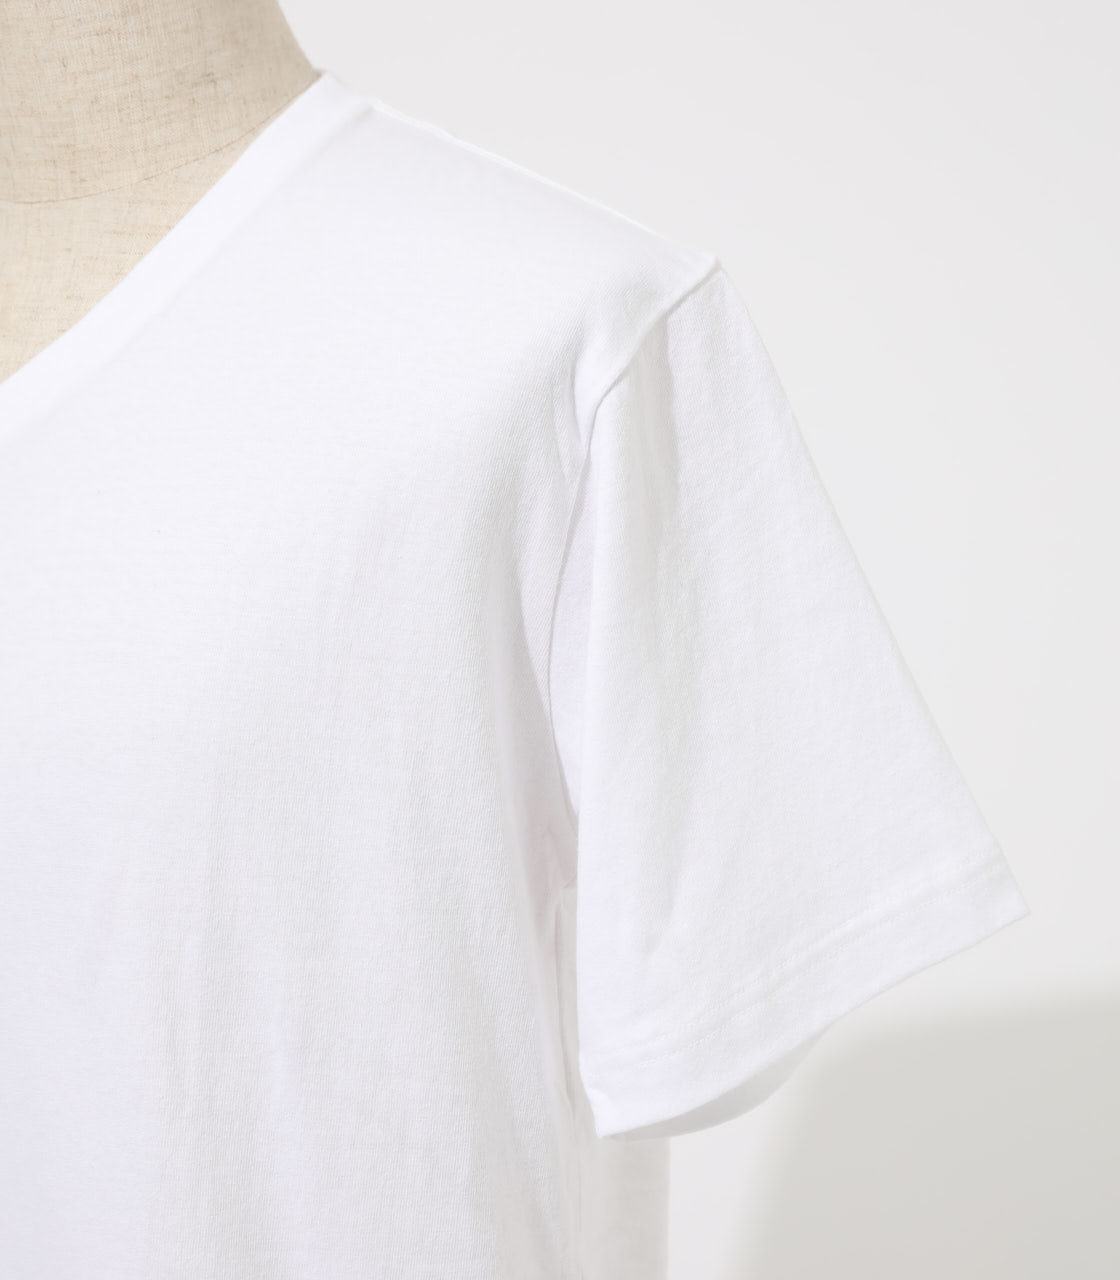 HEAVY WEIGHT Vネック T-SHIRT 詳細画像 WHT 6